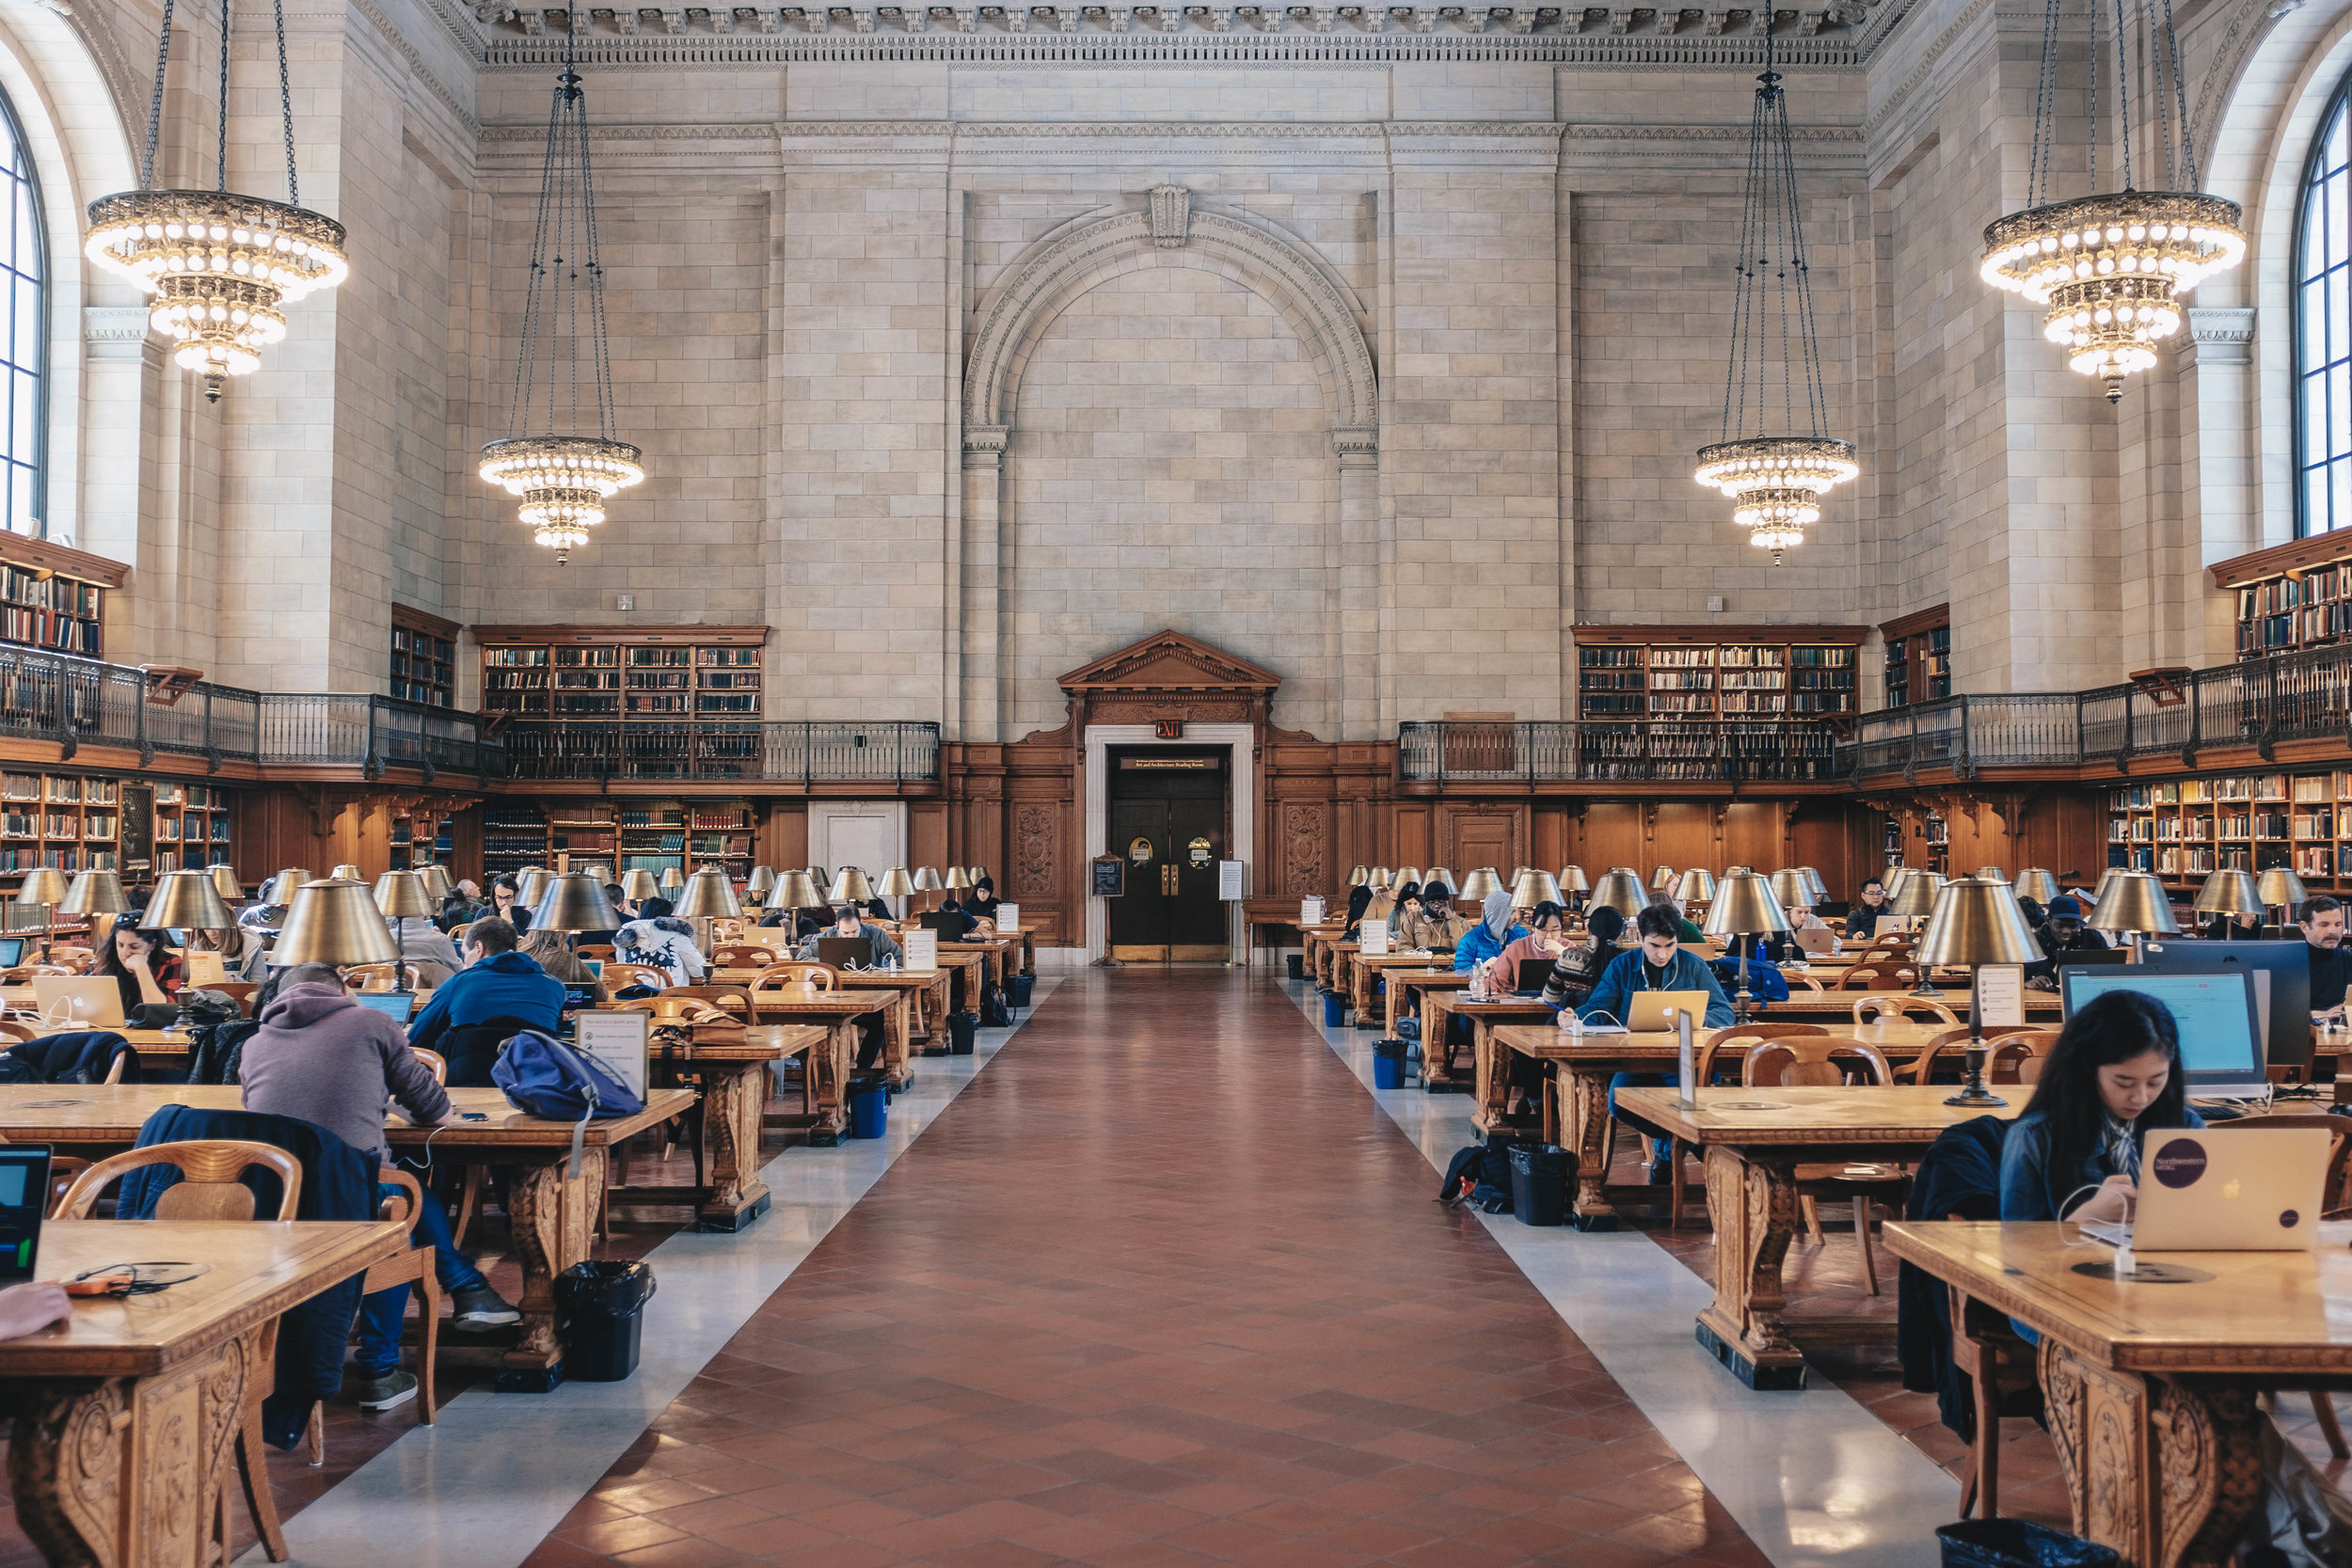 The New York Public Library is more than just a conducive spot to browse library material or catch up on some work